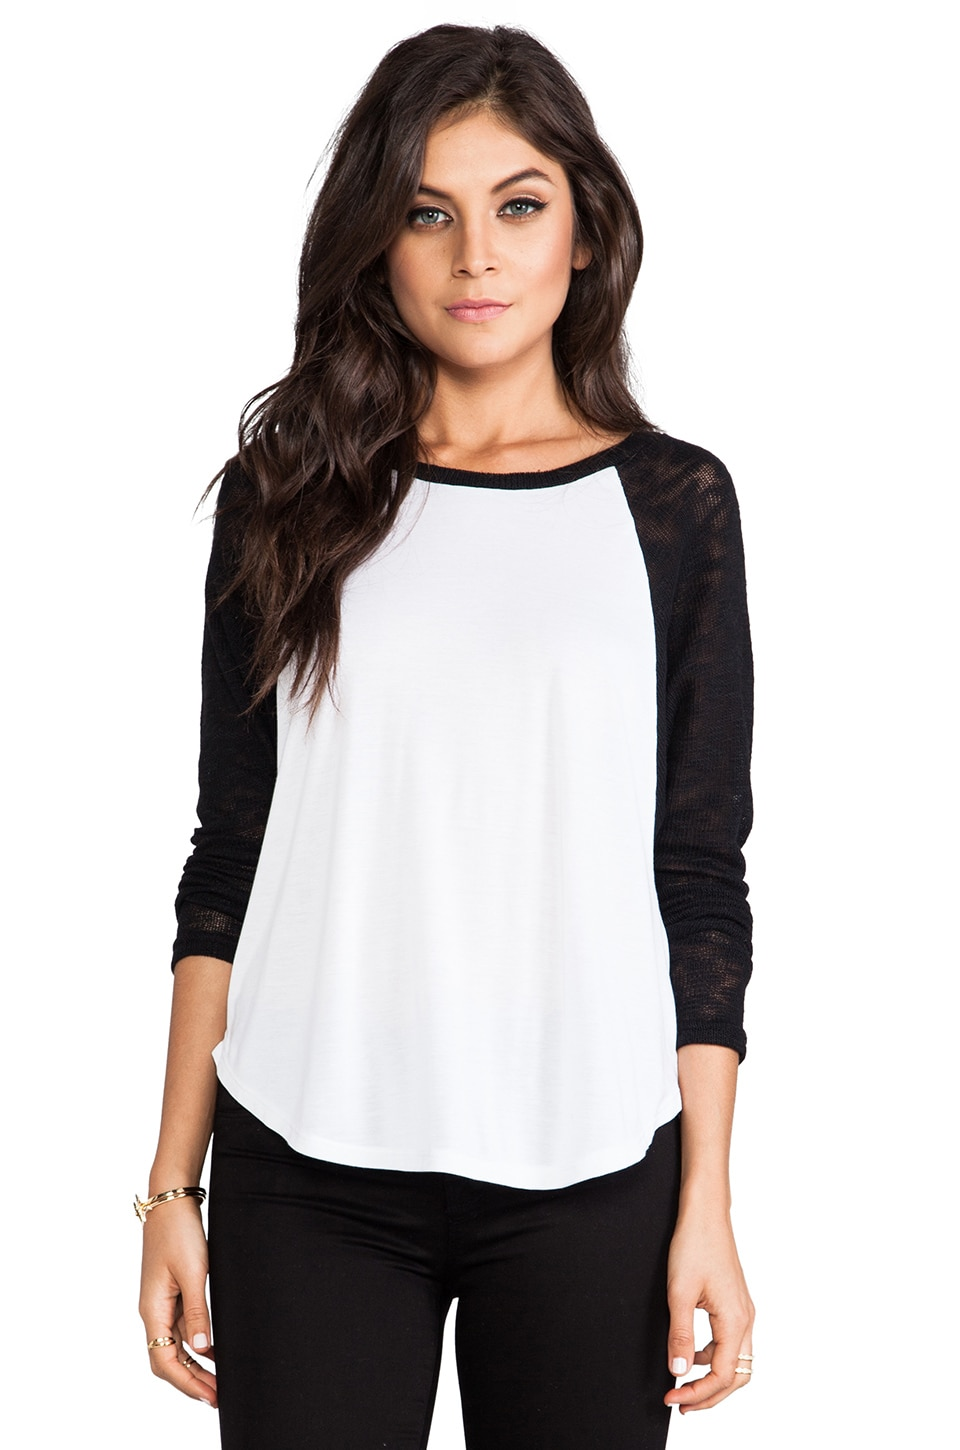 Michael Lauren Rio Raglan Top in White & Black